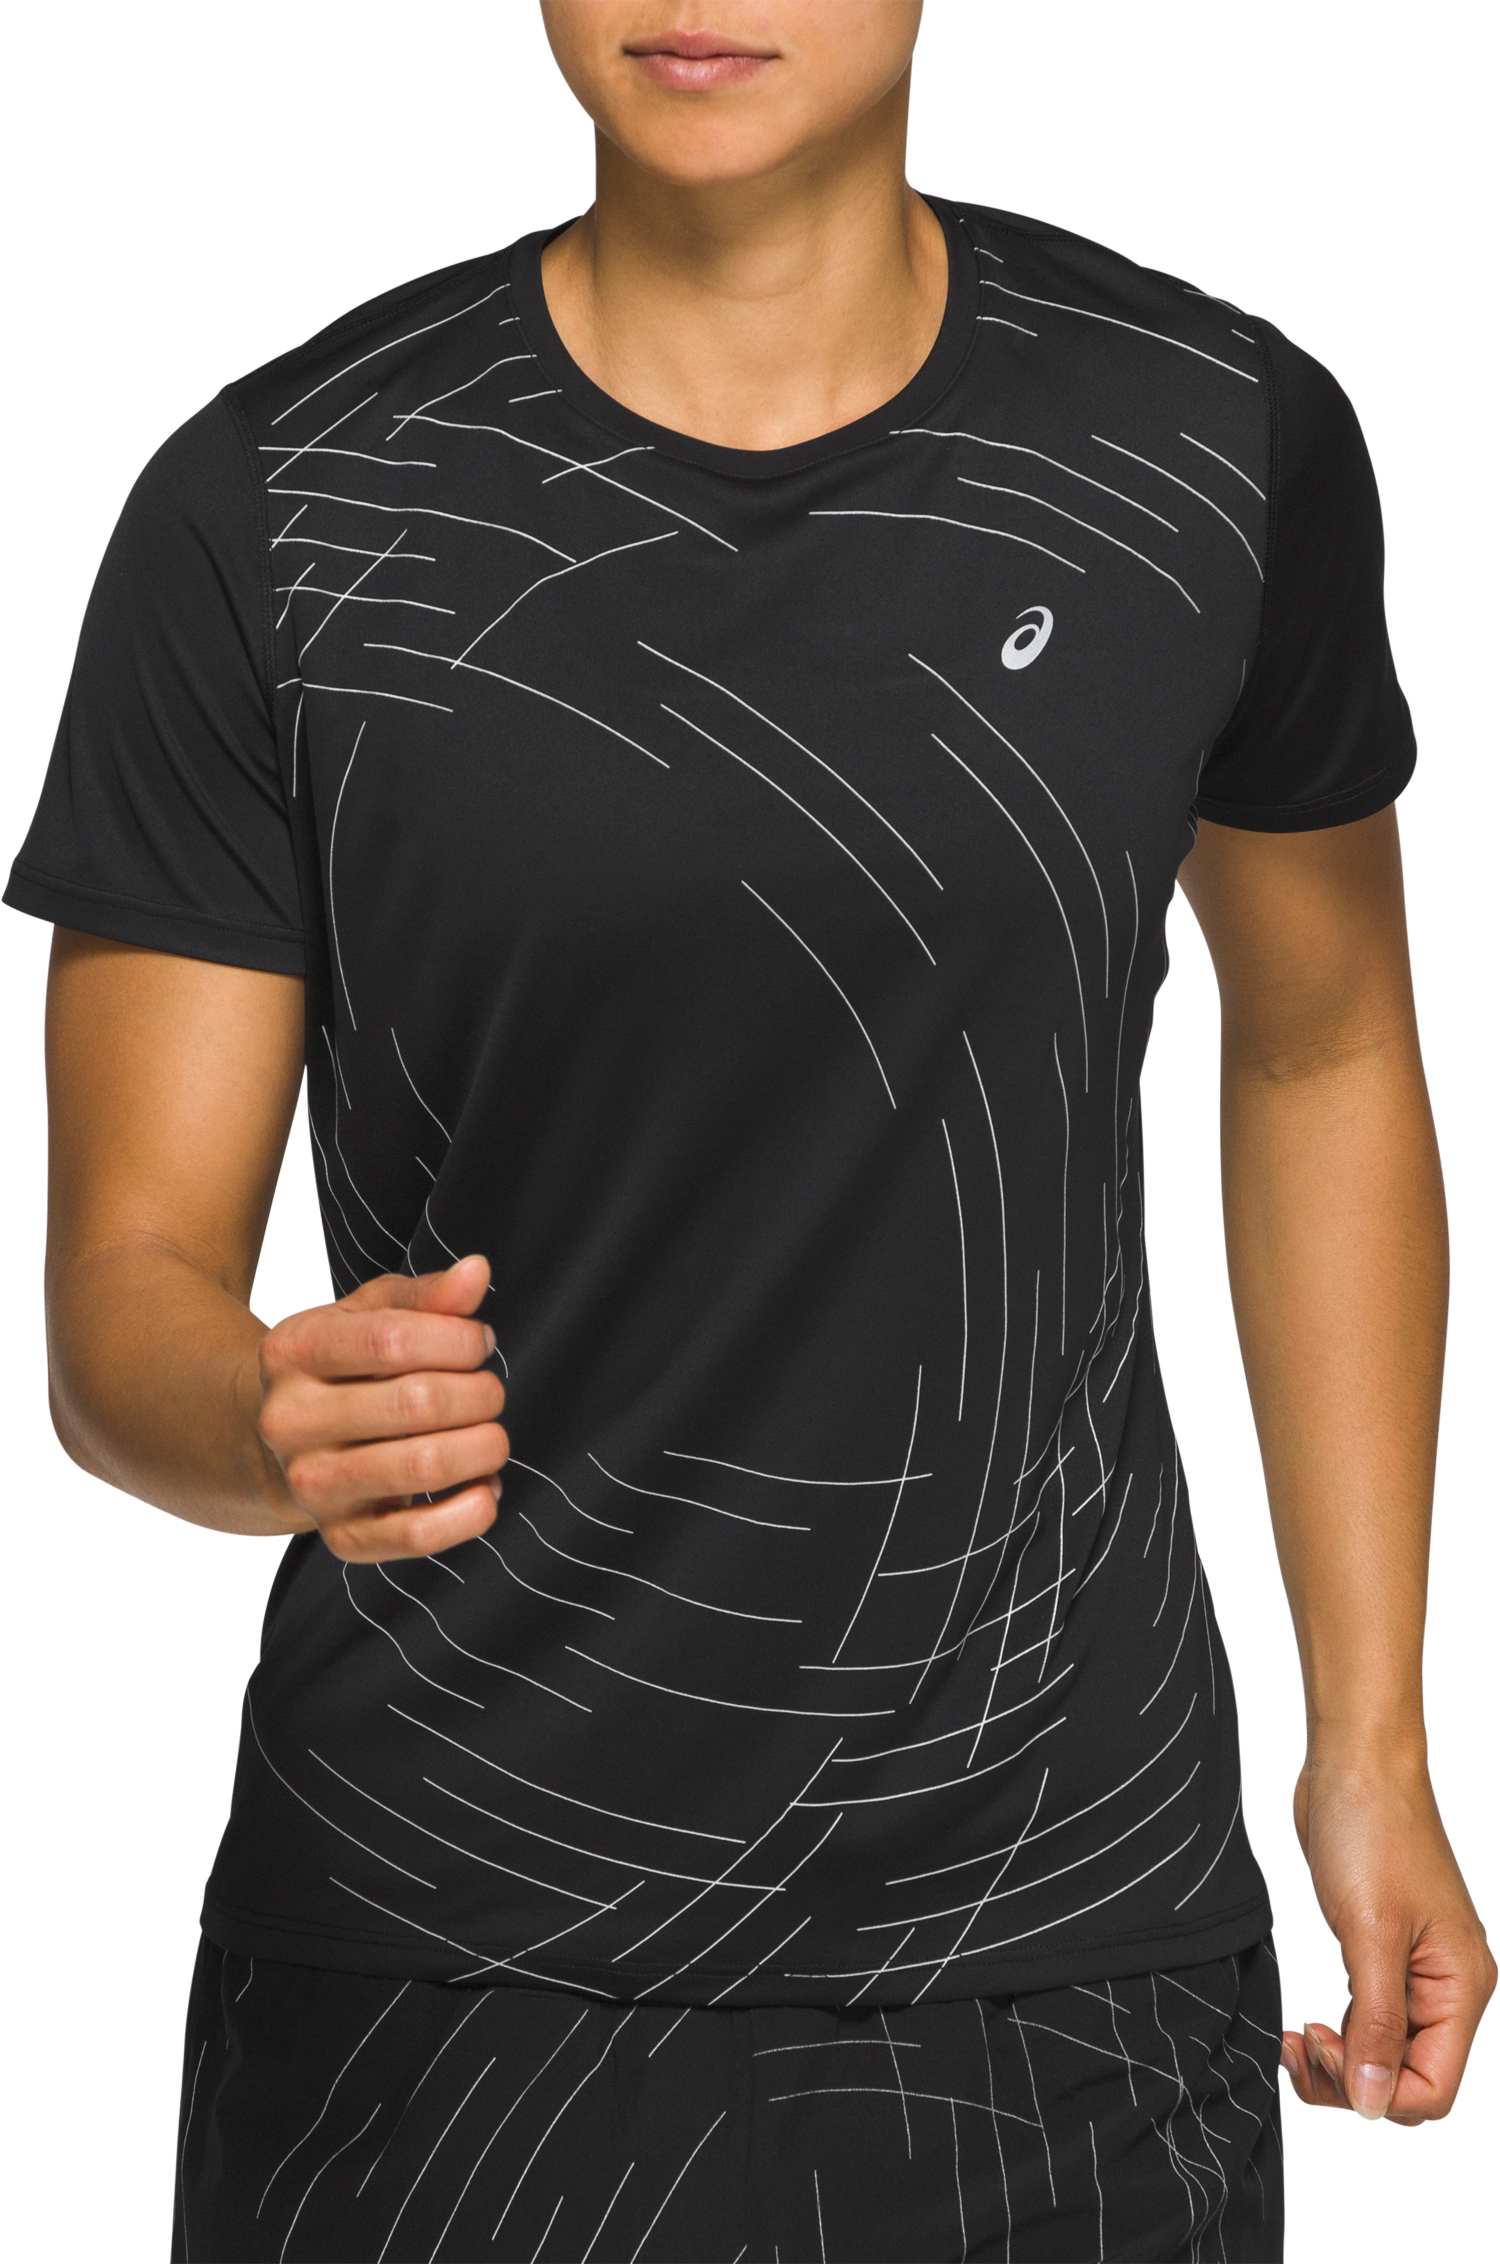 Boost Turist Putte asics t shirts for womens skive weekend omfattende